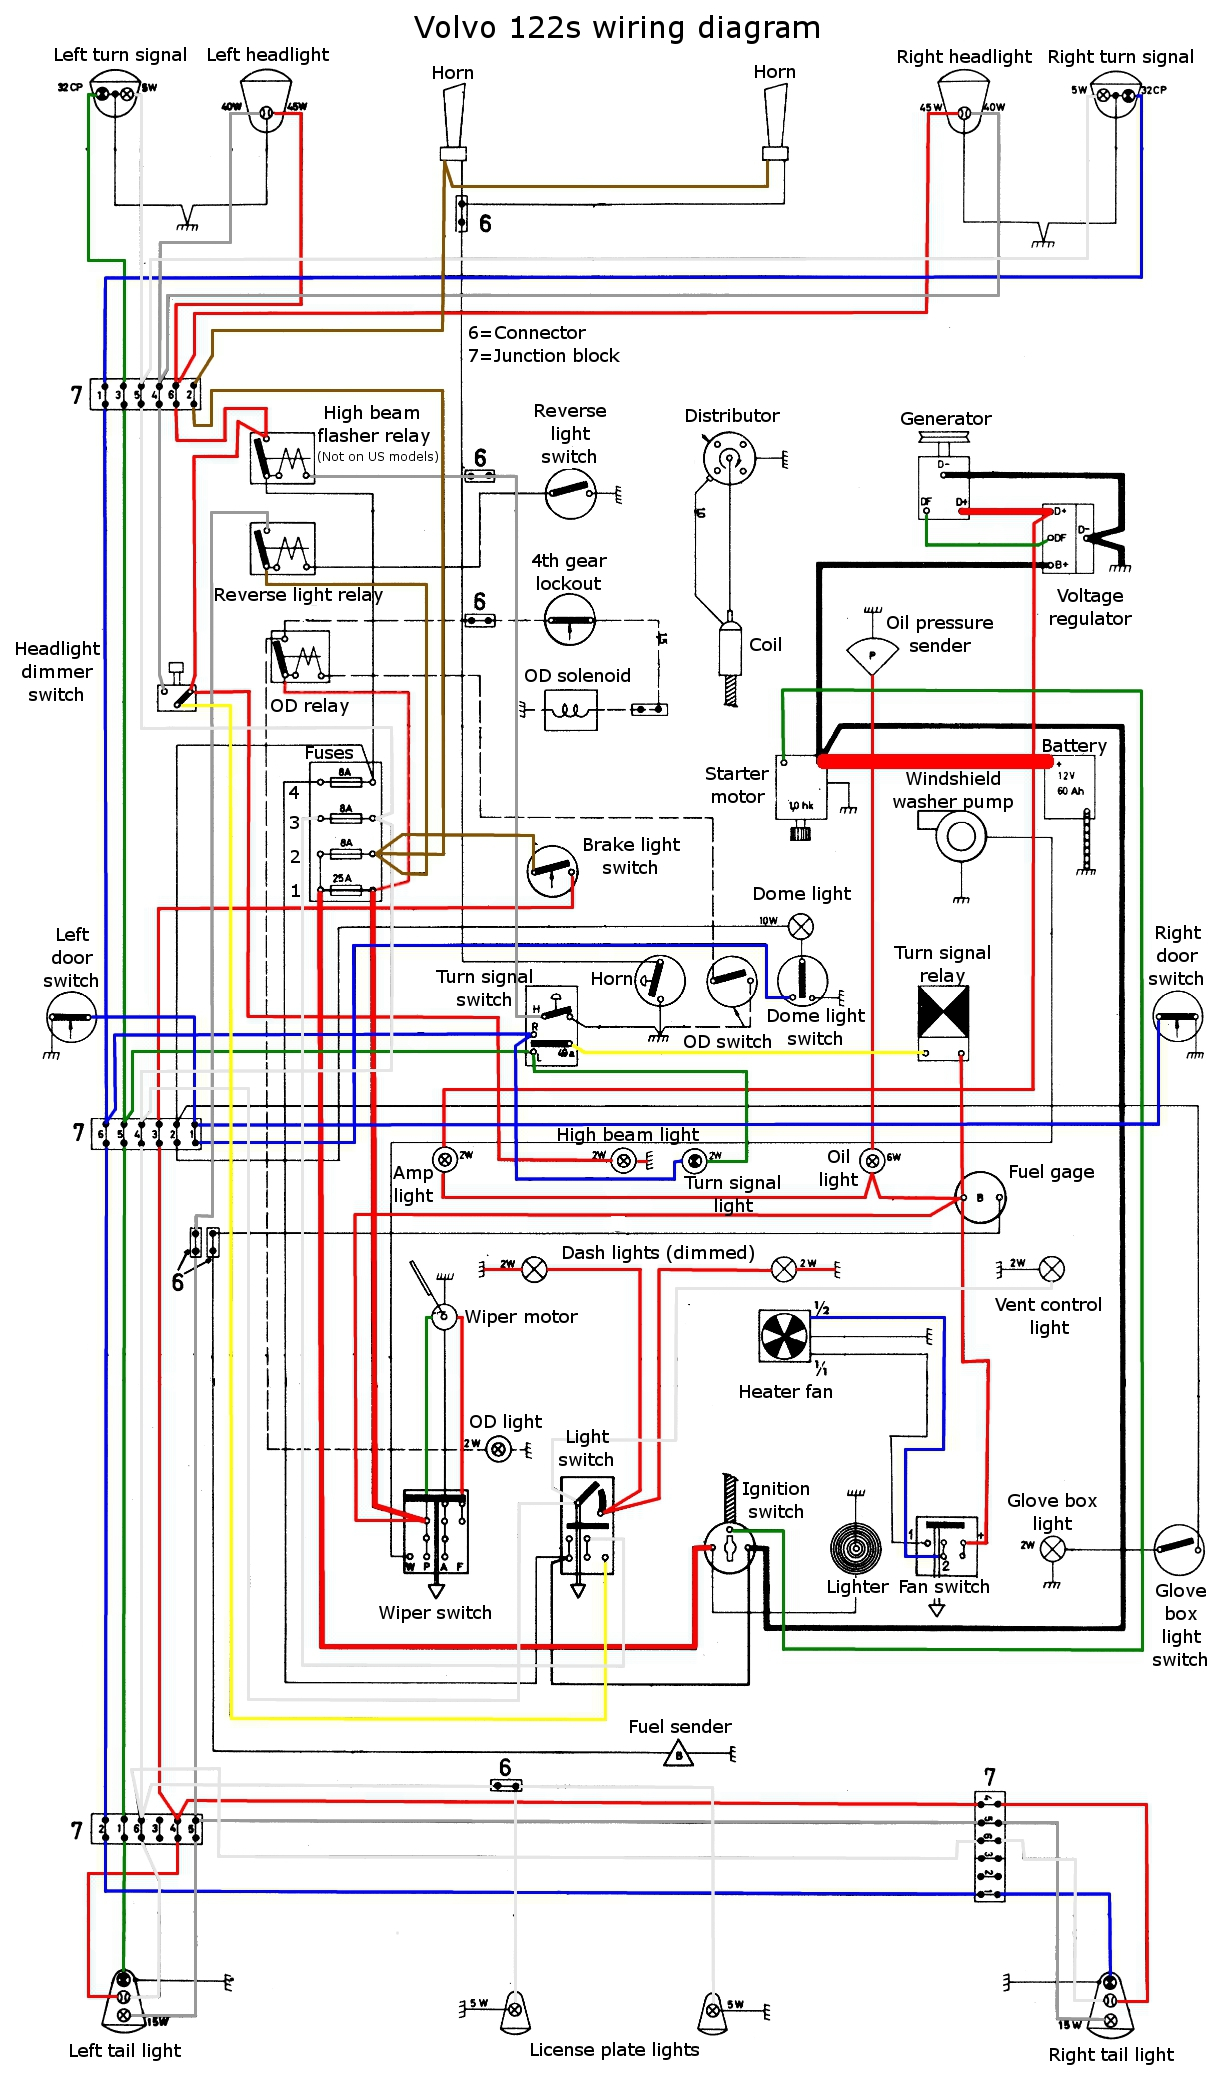 122 wiring diagram color wiring gremlins Vw R32 Wiring Diagram at fashall.co